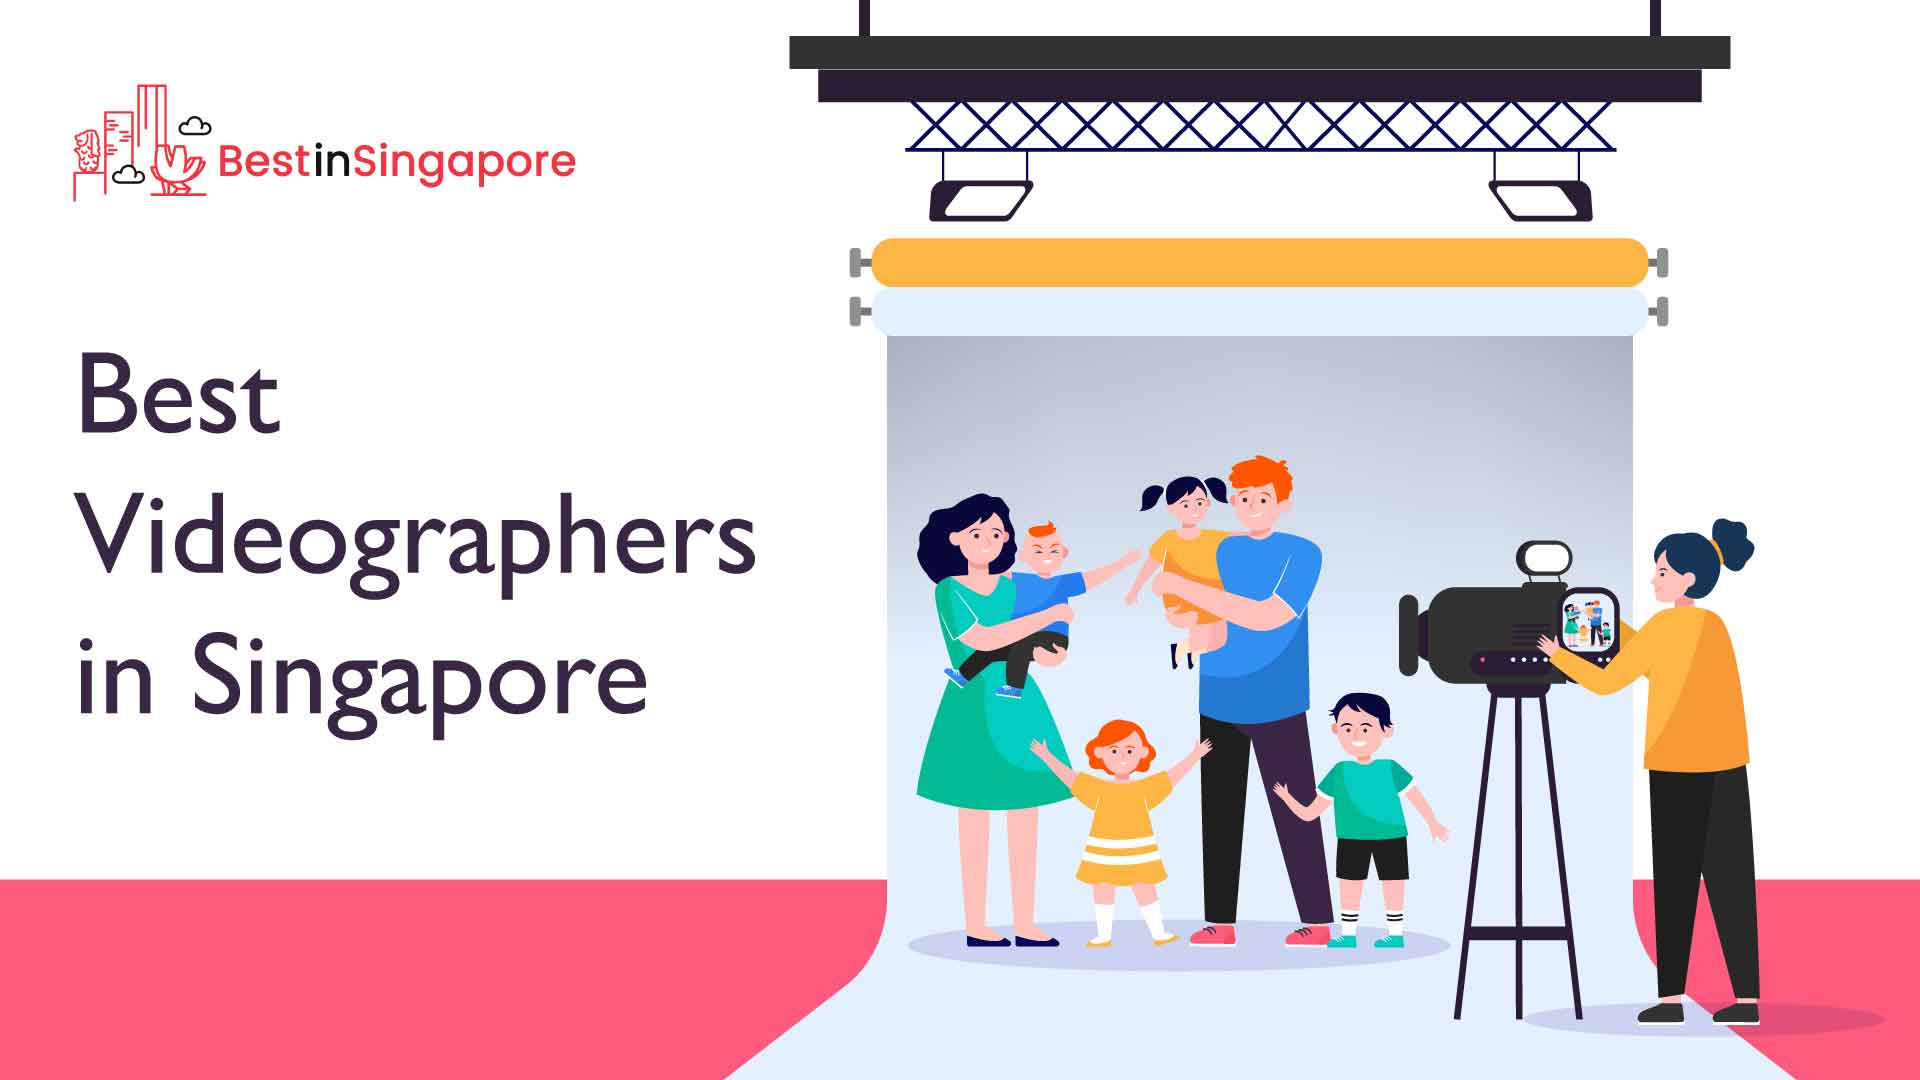 Best Videographers in Singapore